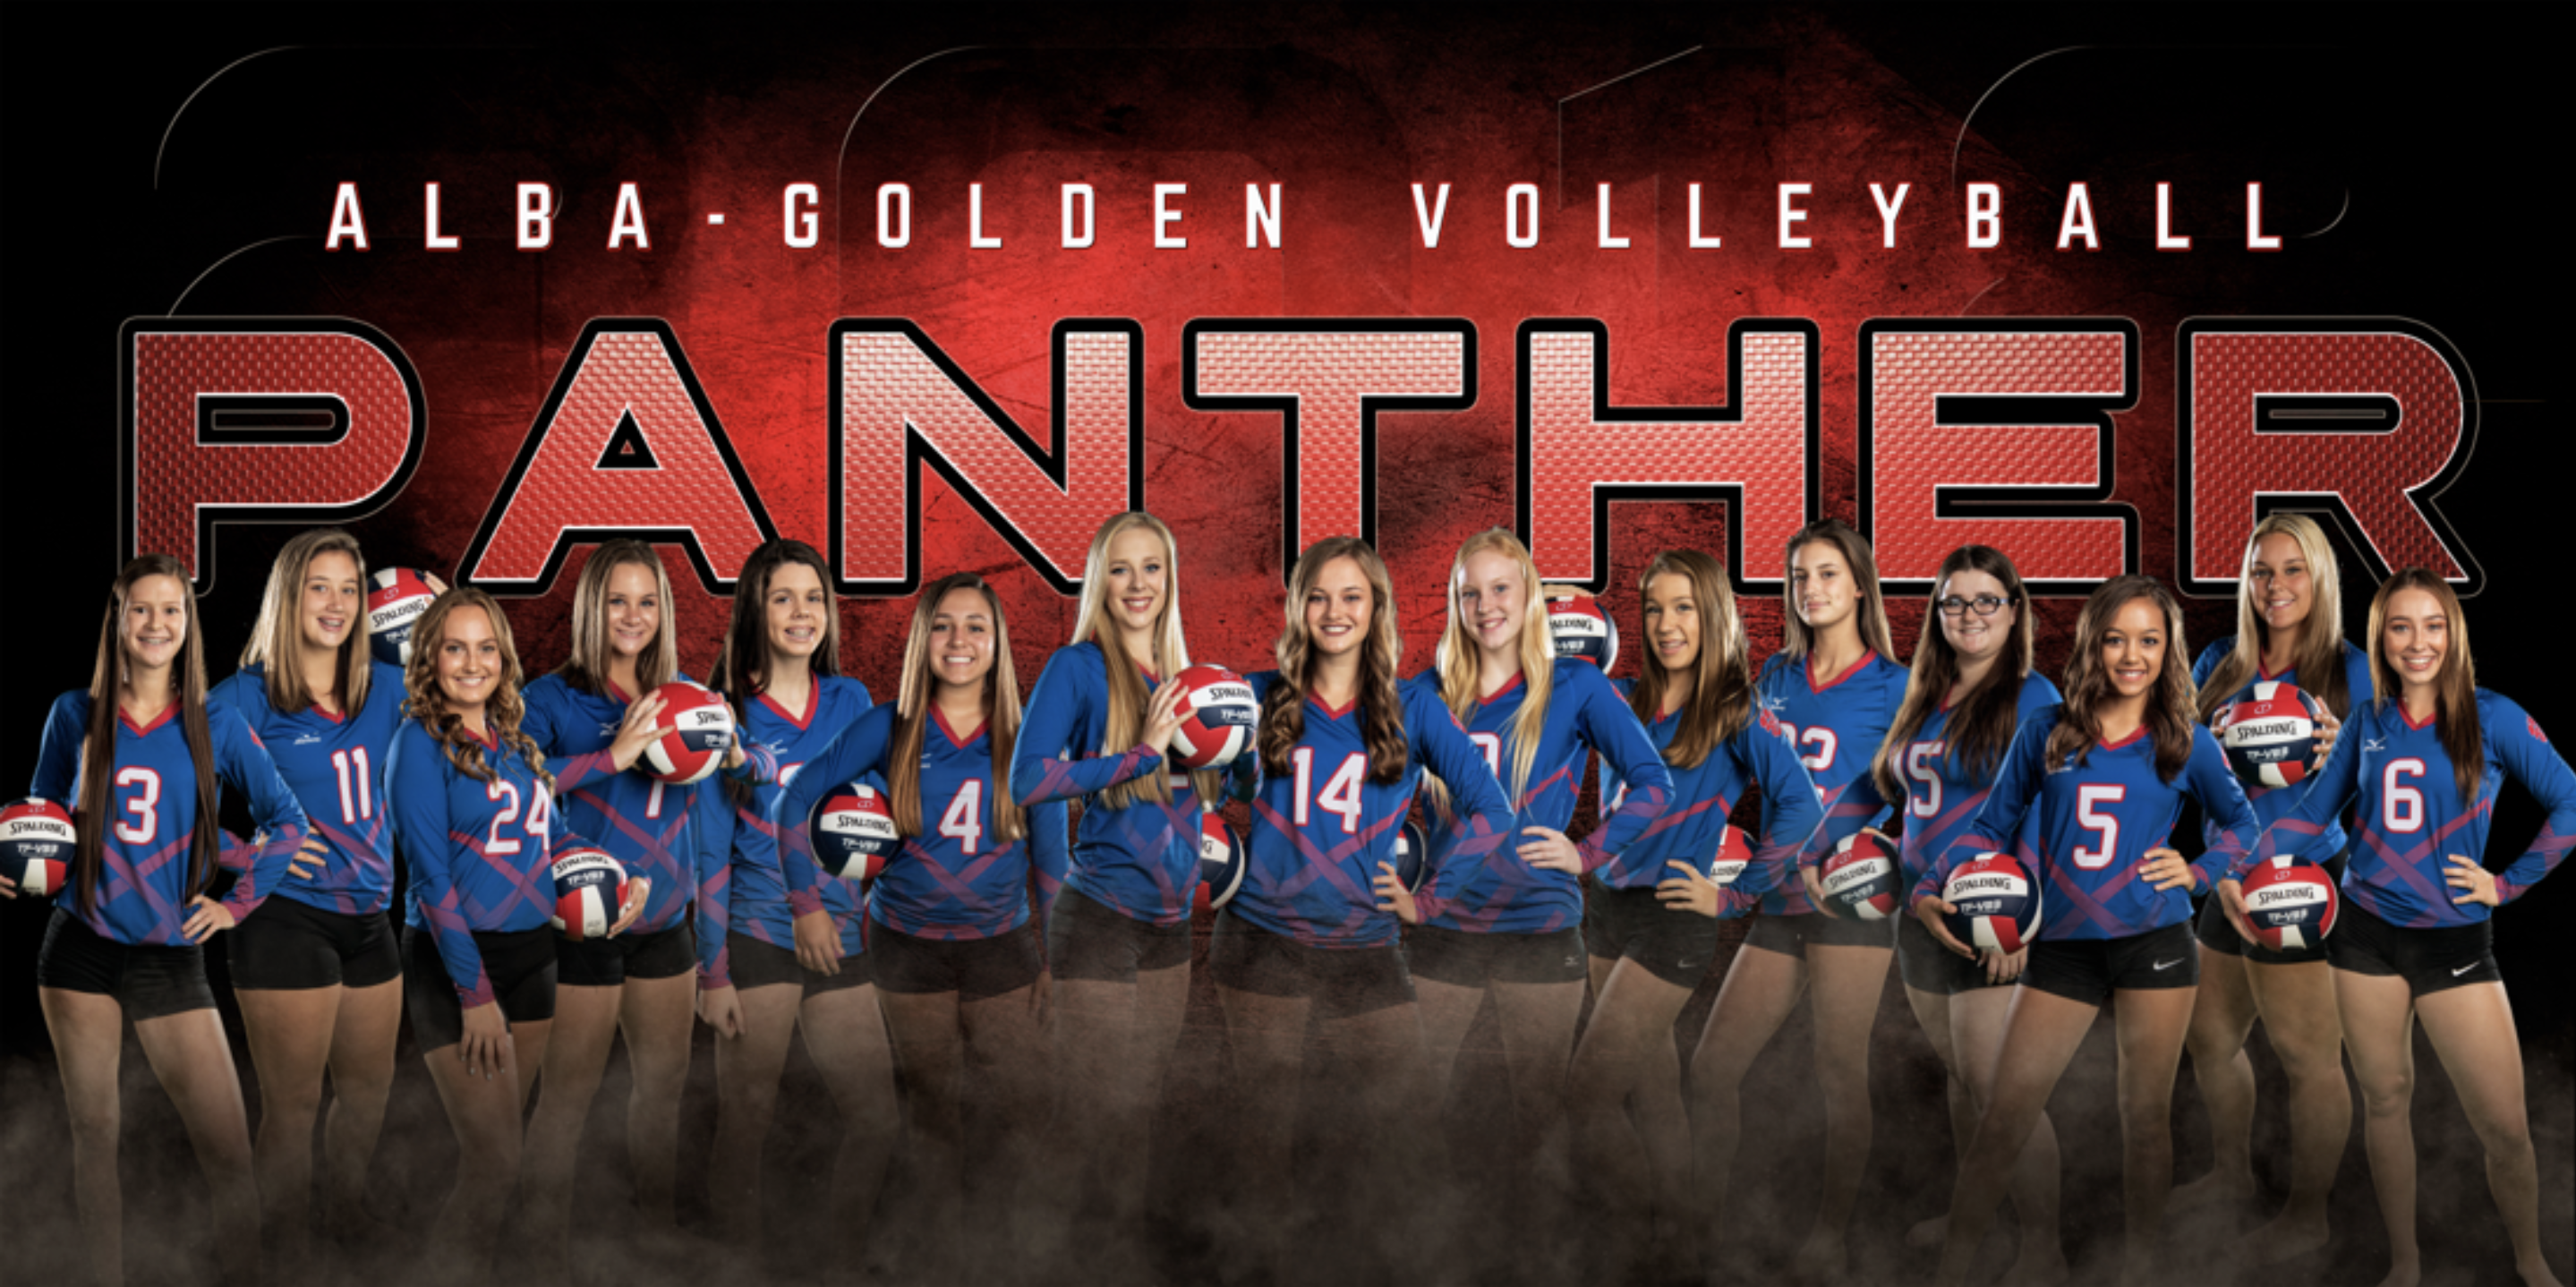 Ag Volleyball Team Sport Banner Volleyball Team Photography Company